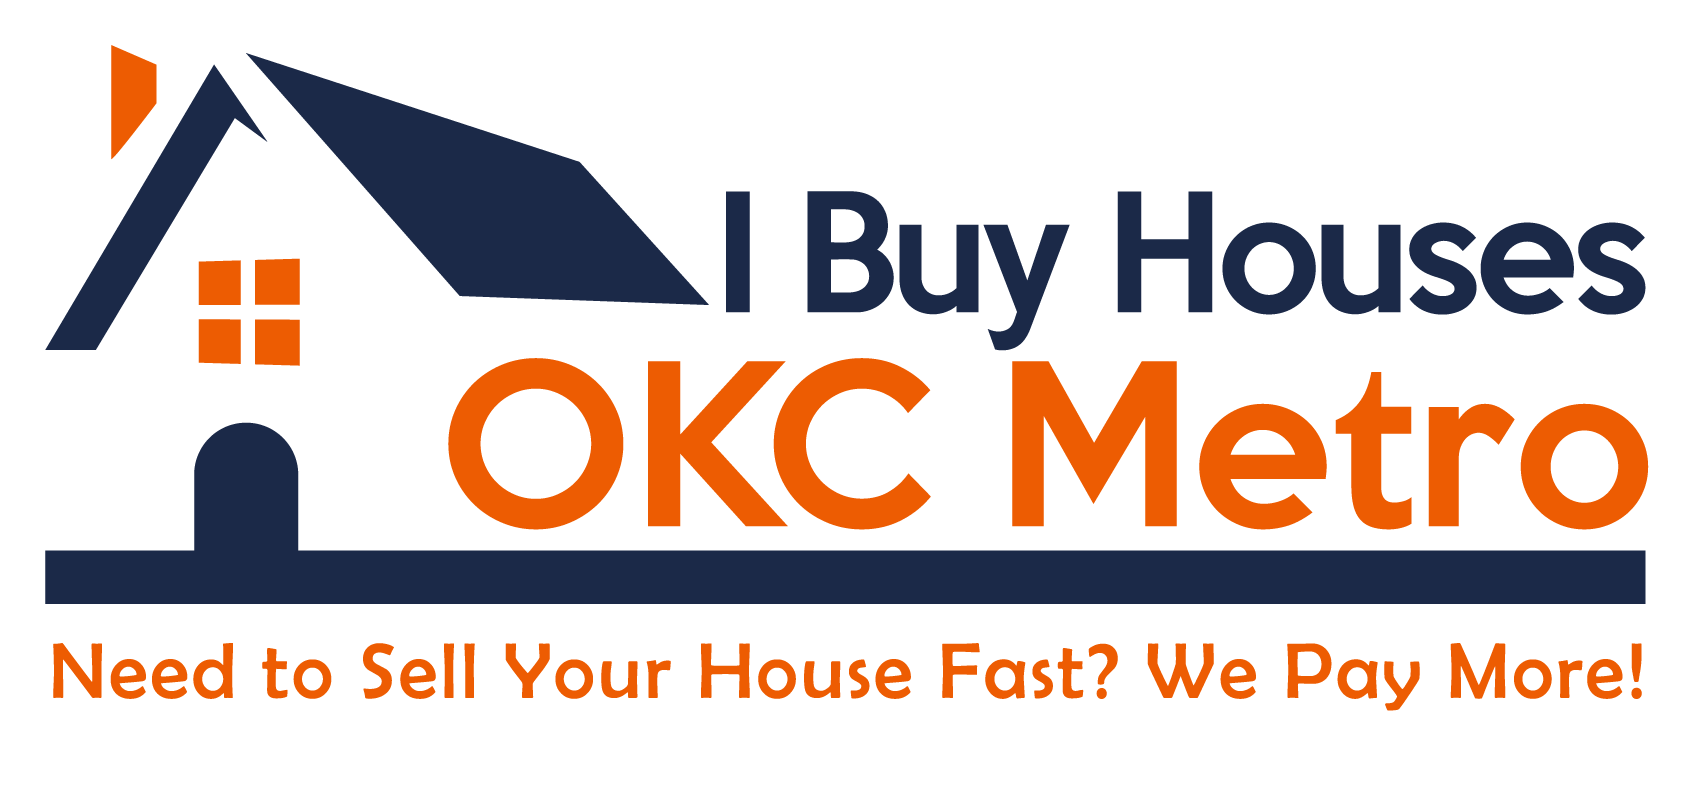 I Buy Houses OKC Metro logo